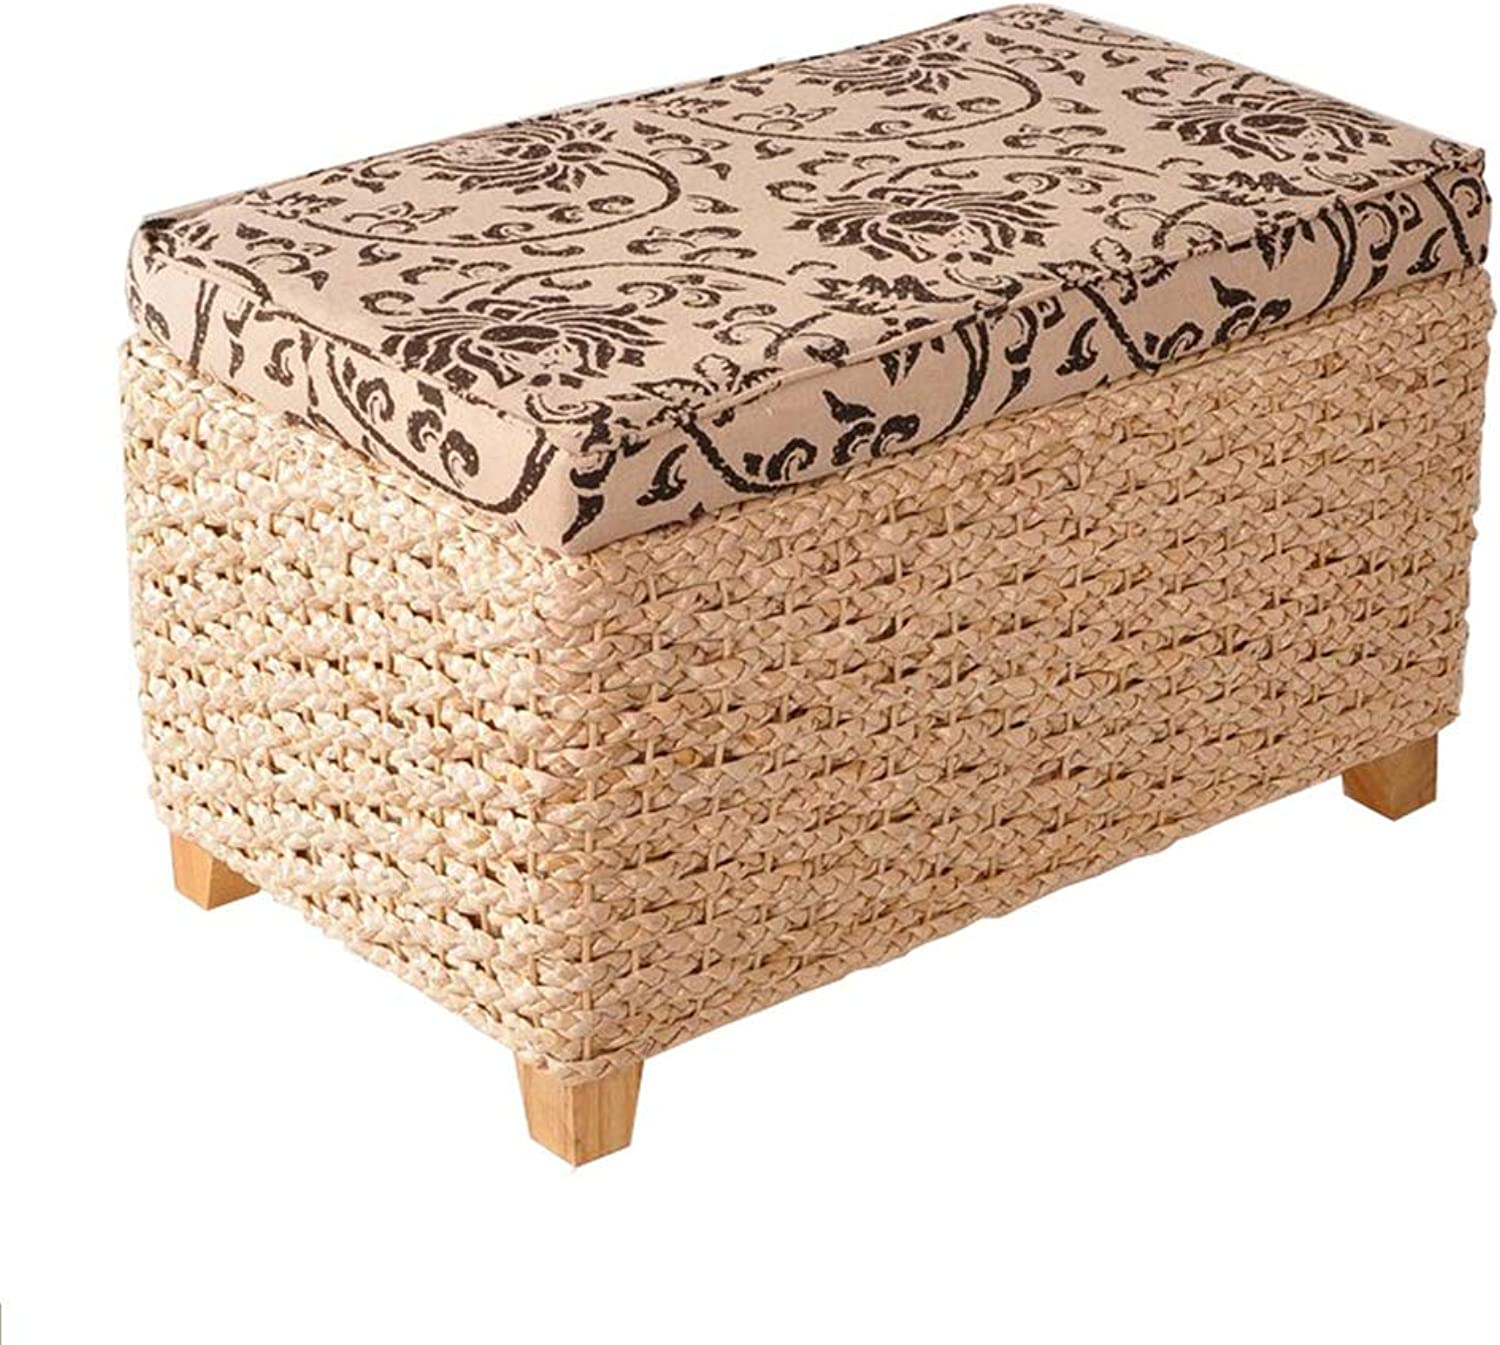 Storage Stool shoes Bench Hand-Woven Rectangular Multi-Function Makeup Stool